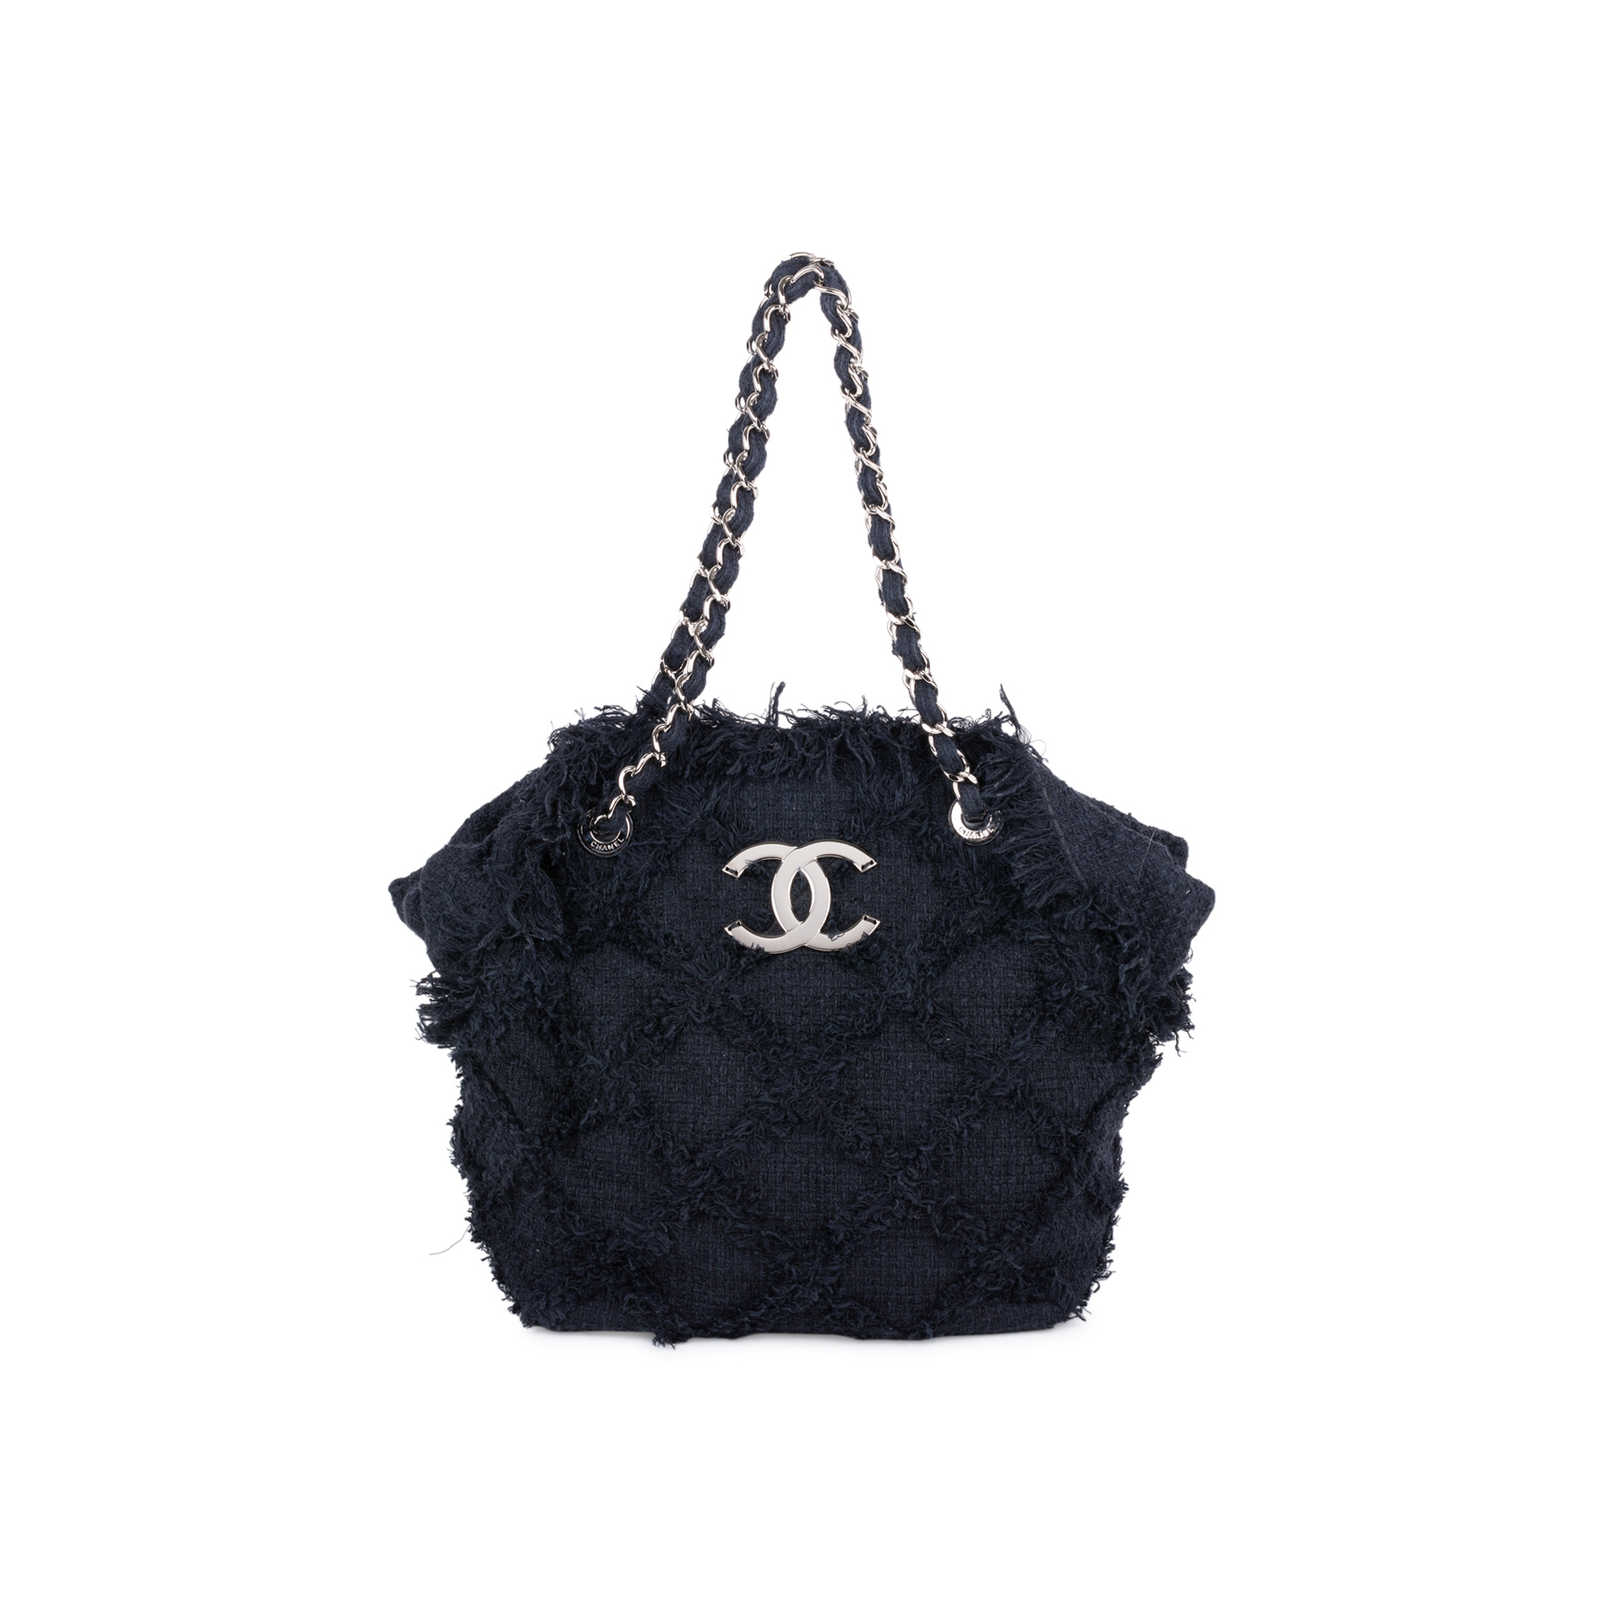 f64608a97 Authentic Second Hand Chanel Tweed Nature Tote Bag (PSS-606-00008) ...